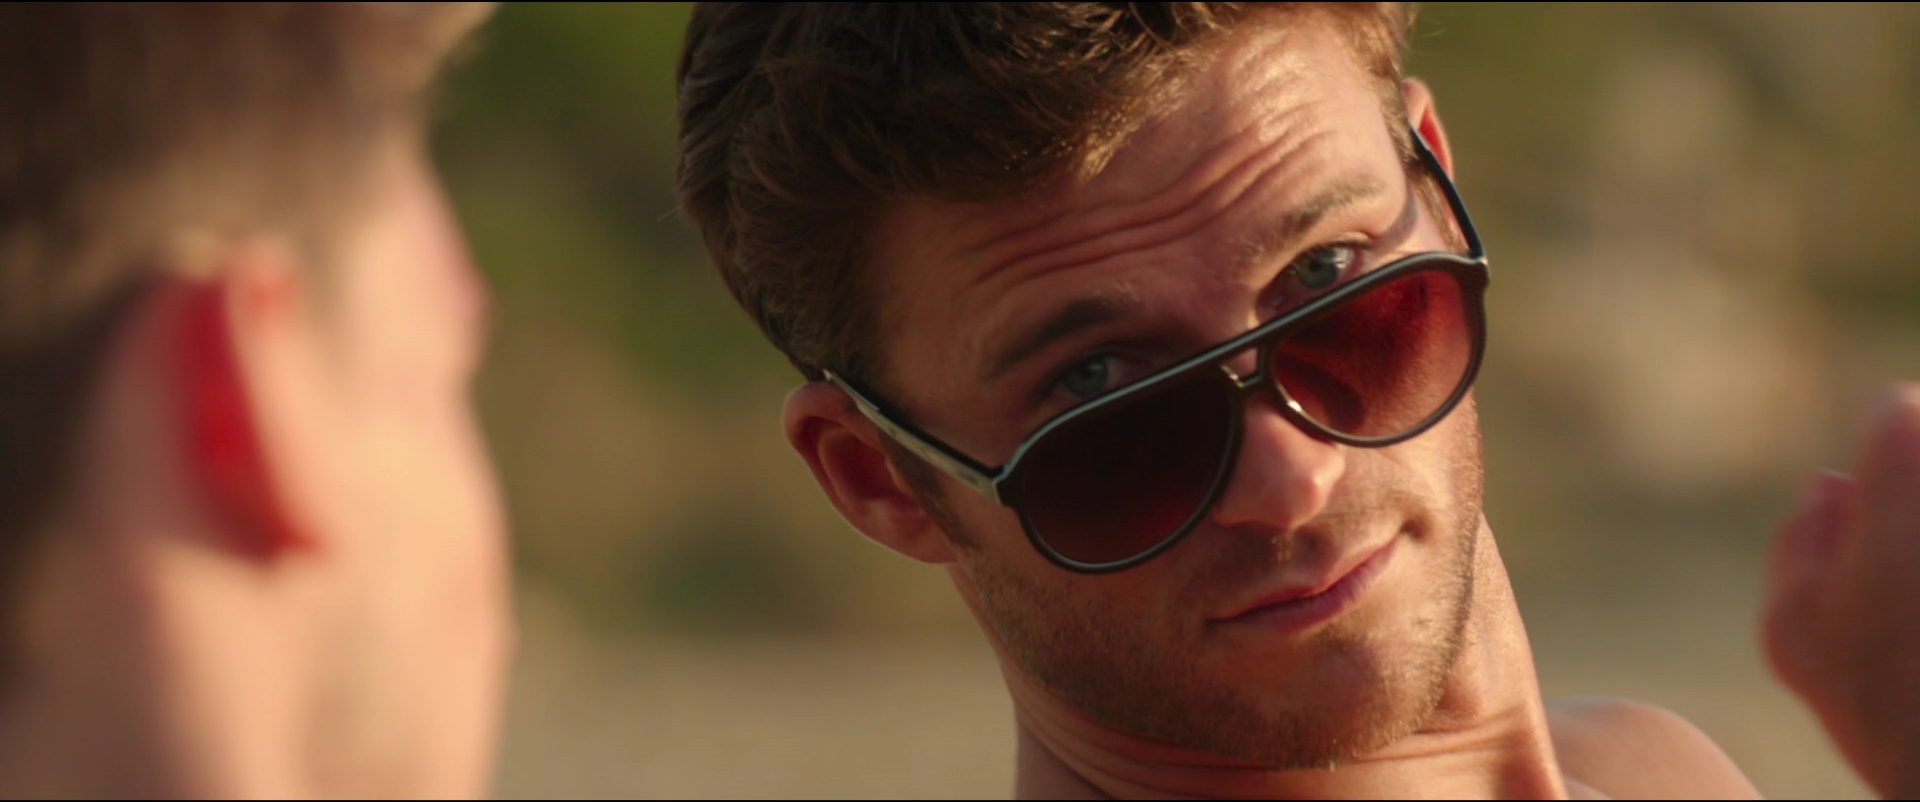 d64e3e343b568 Lacoste Sunglasses (L741S) Worn by Scott Eastwood in Overdrive (2017) Movie  Product